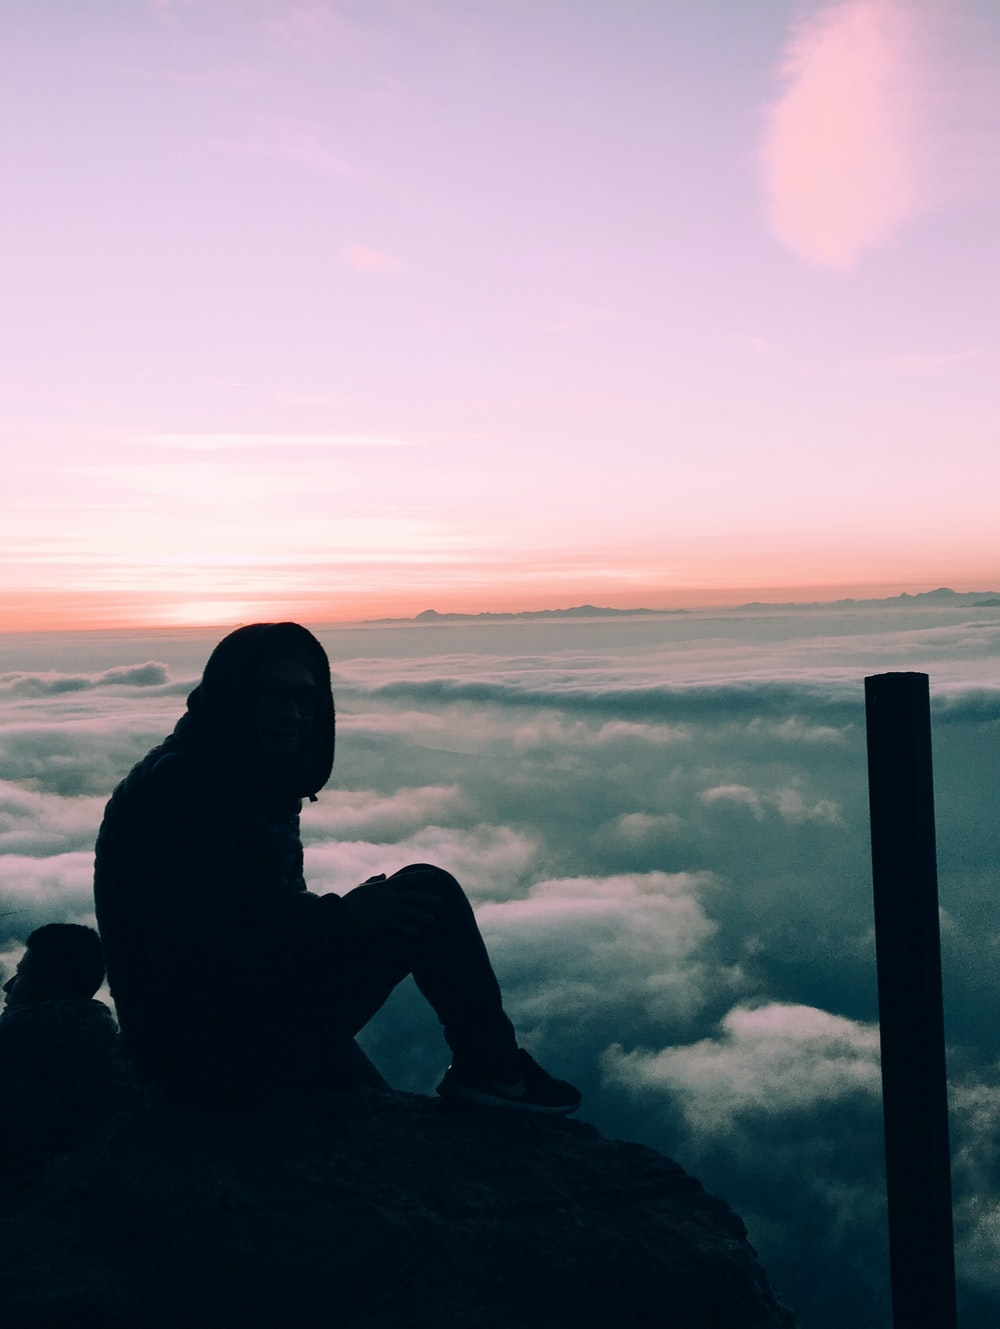 silhouette of person sitting on cliff seeing sea of clouds